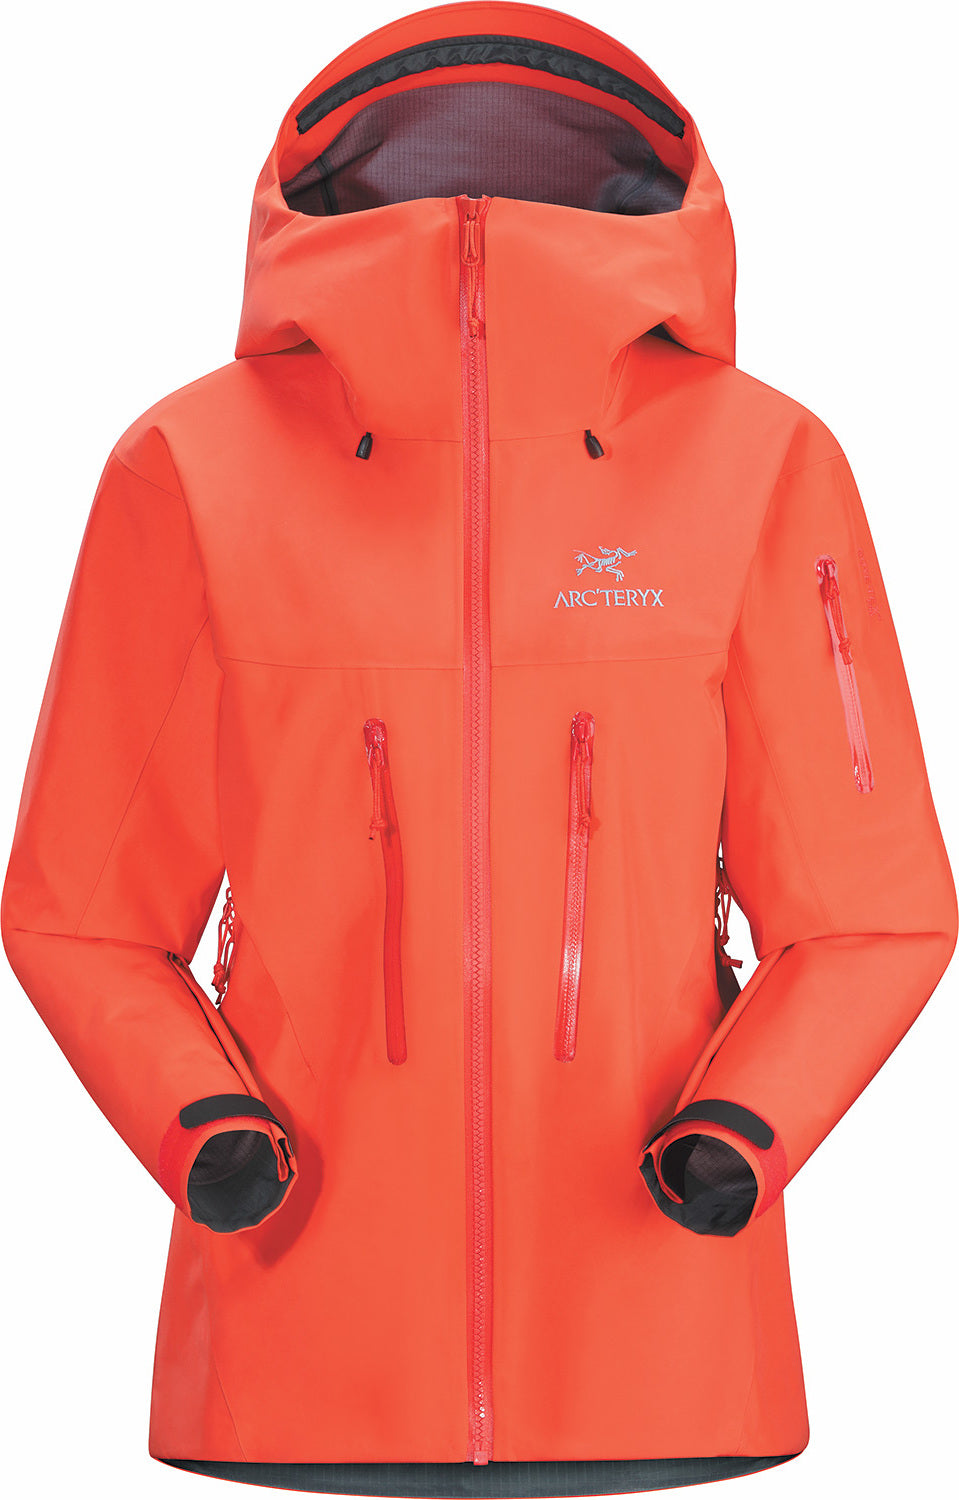 cb481505 Arc'teryx Alpha Sv Jacket - Women's | The Last Hunt